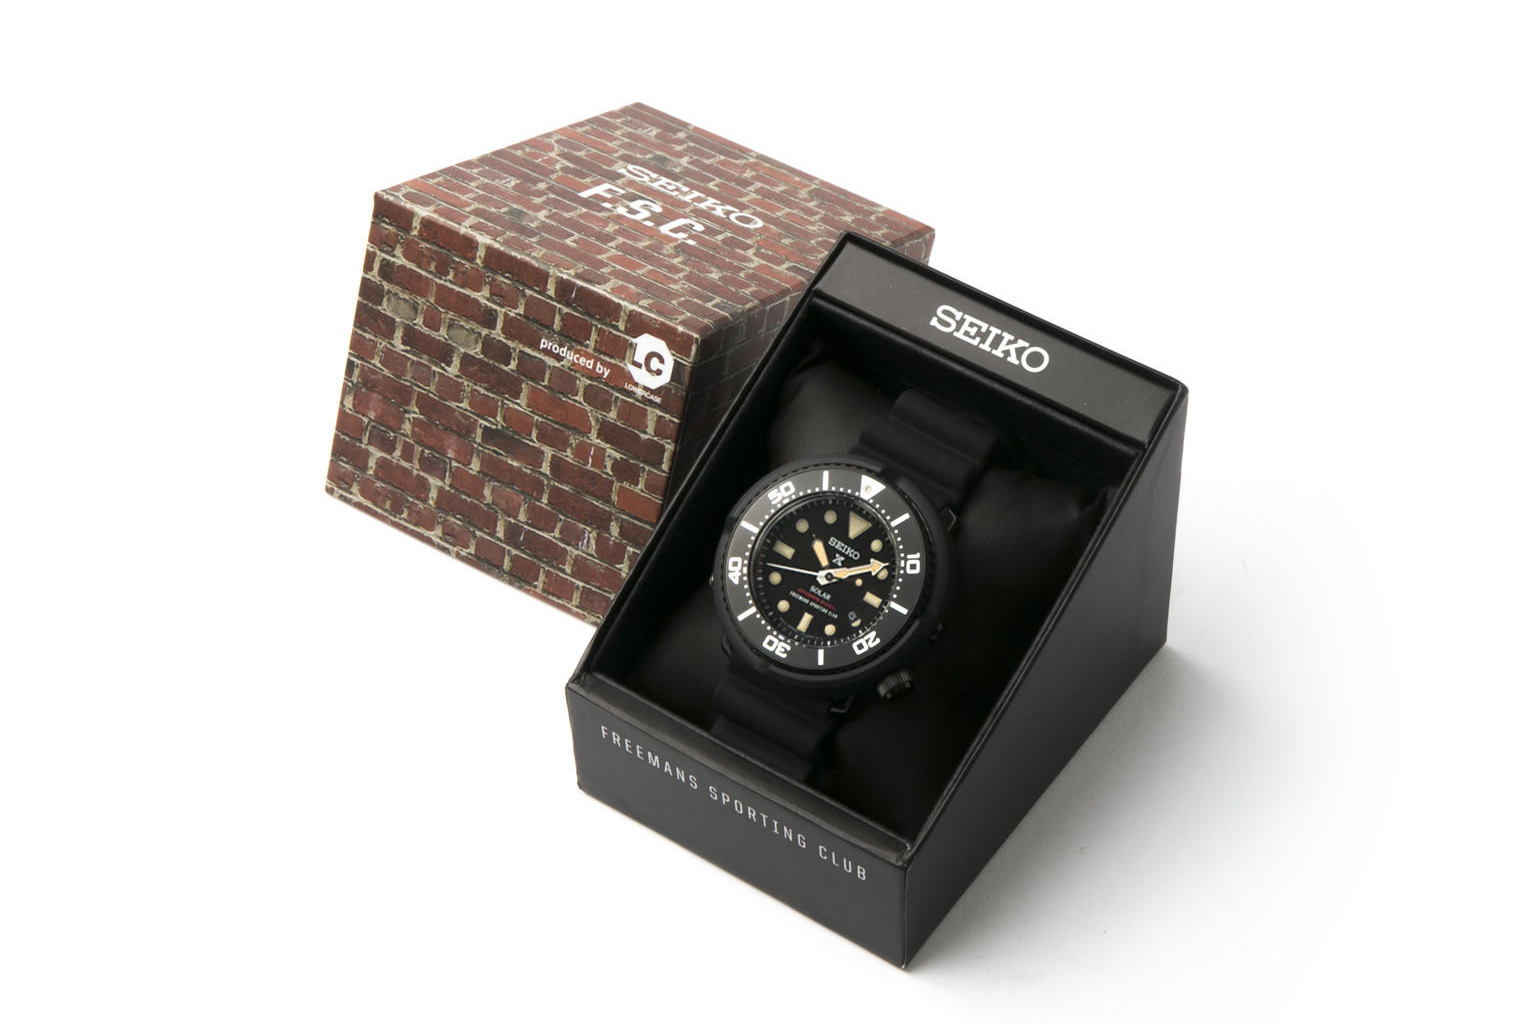 Freemans Sporting Club & Lowercase Help Deliver a Special Seiko Timepiece